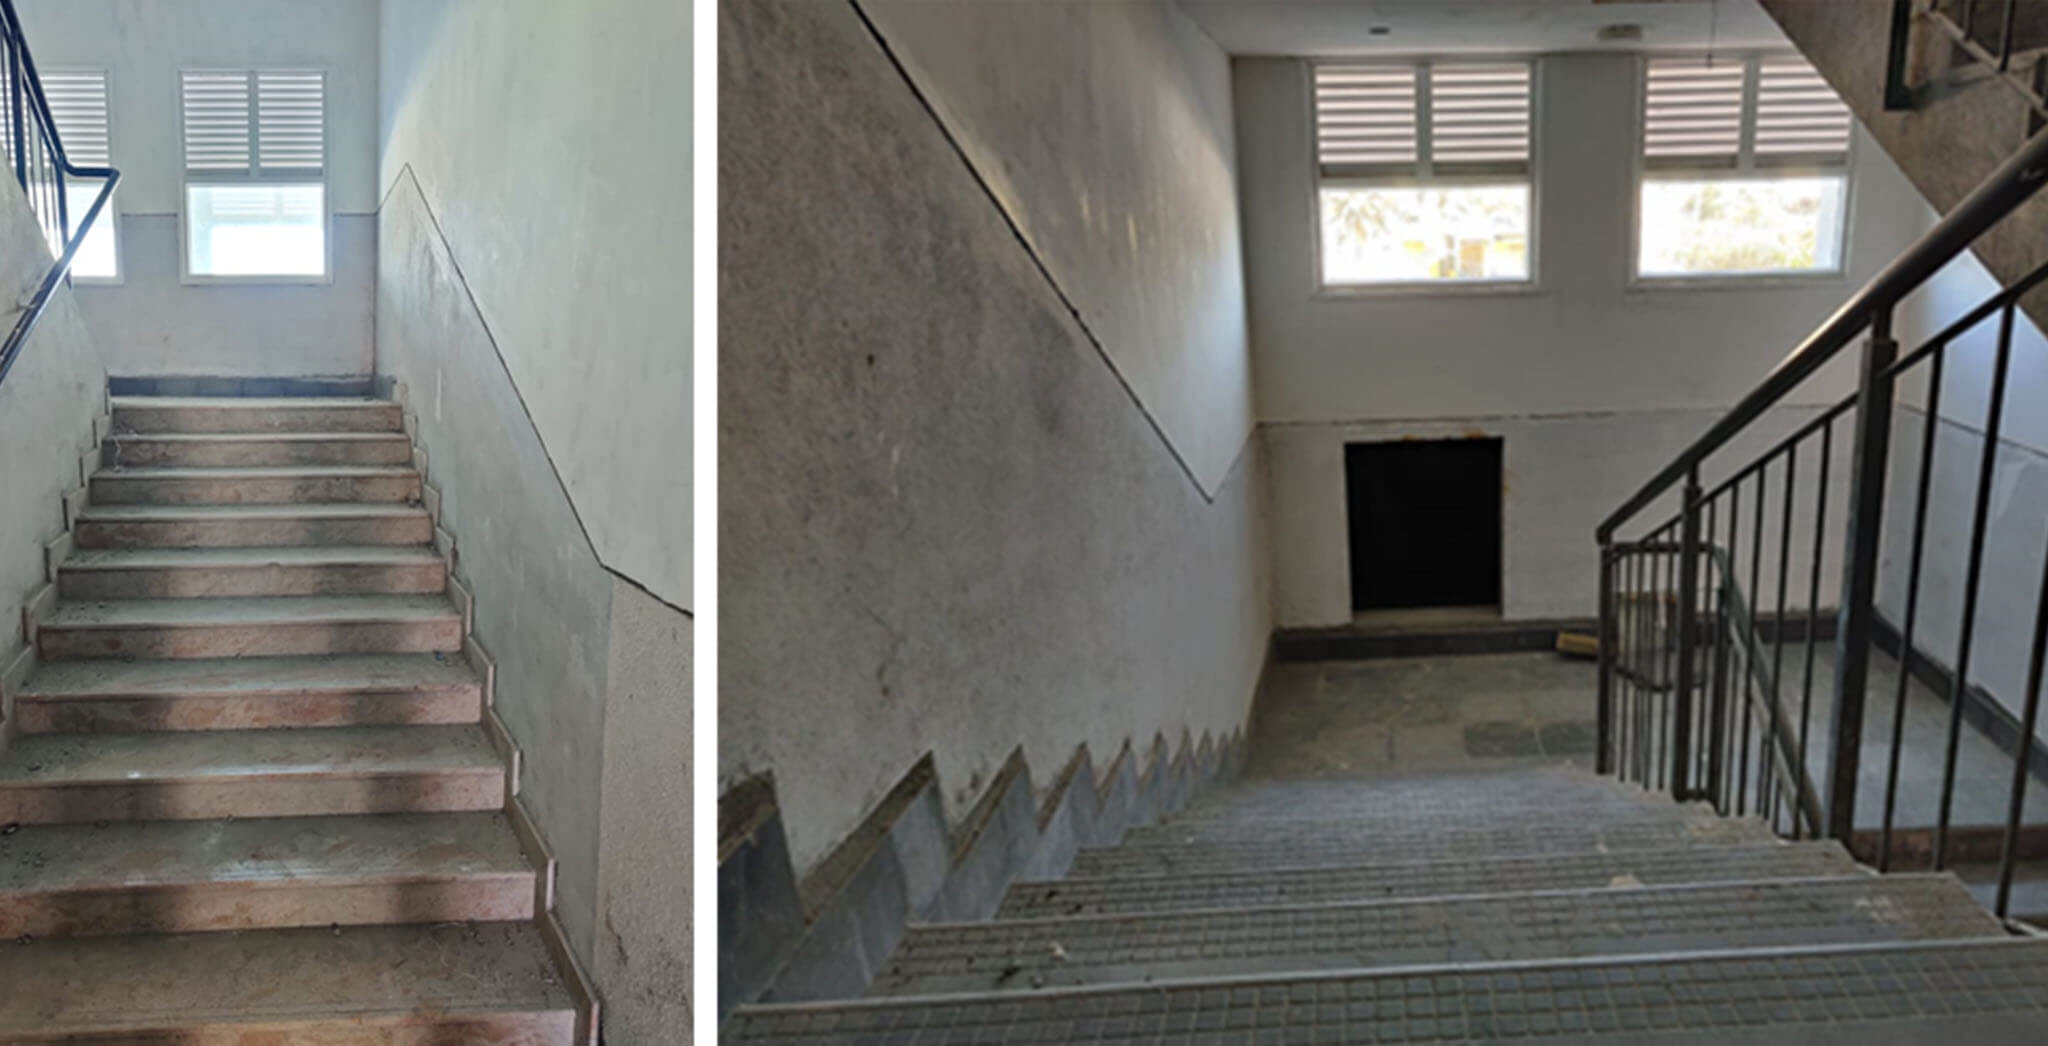 May 2021 - Staircase area—painting work-in-progress